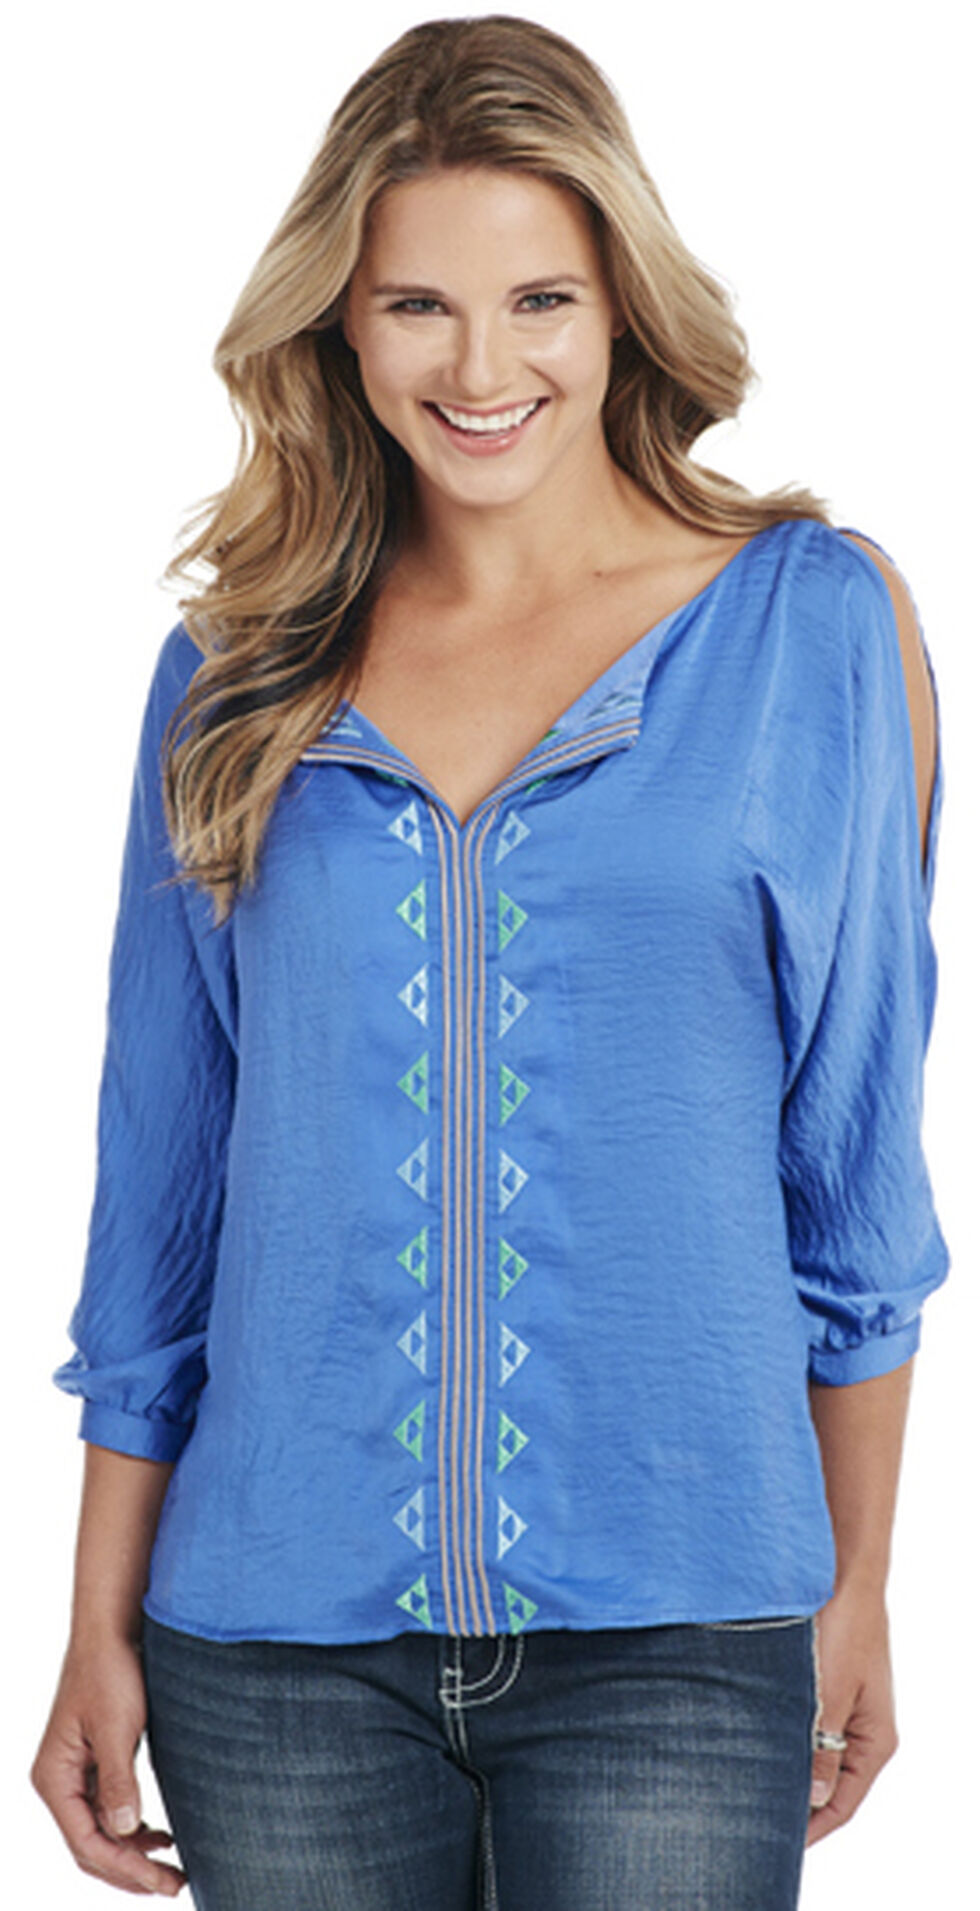 Cowgirl Up Women's Blue 3/4 Sleeve Cut-Out Shoulder Blouse, Blue, hi-res